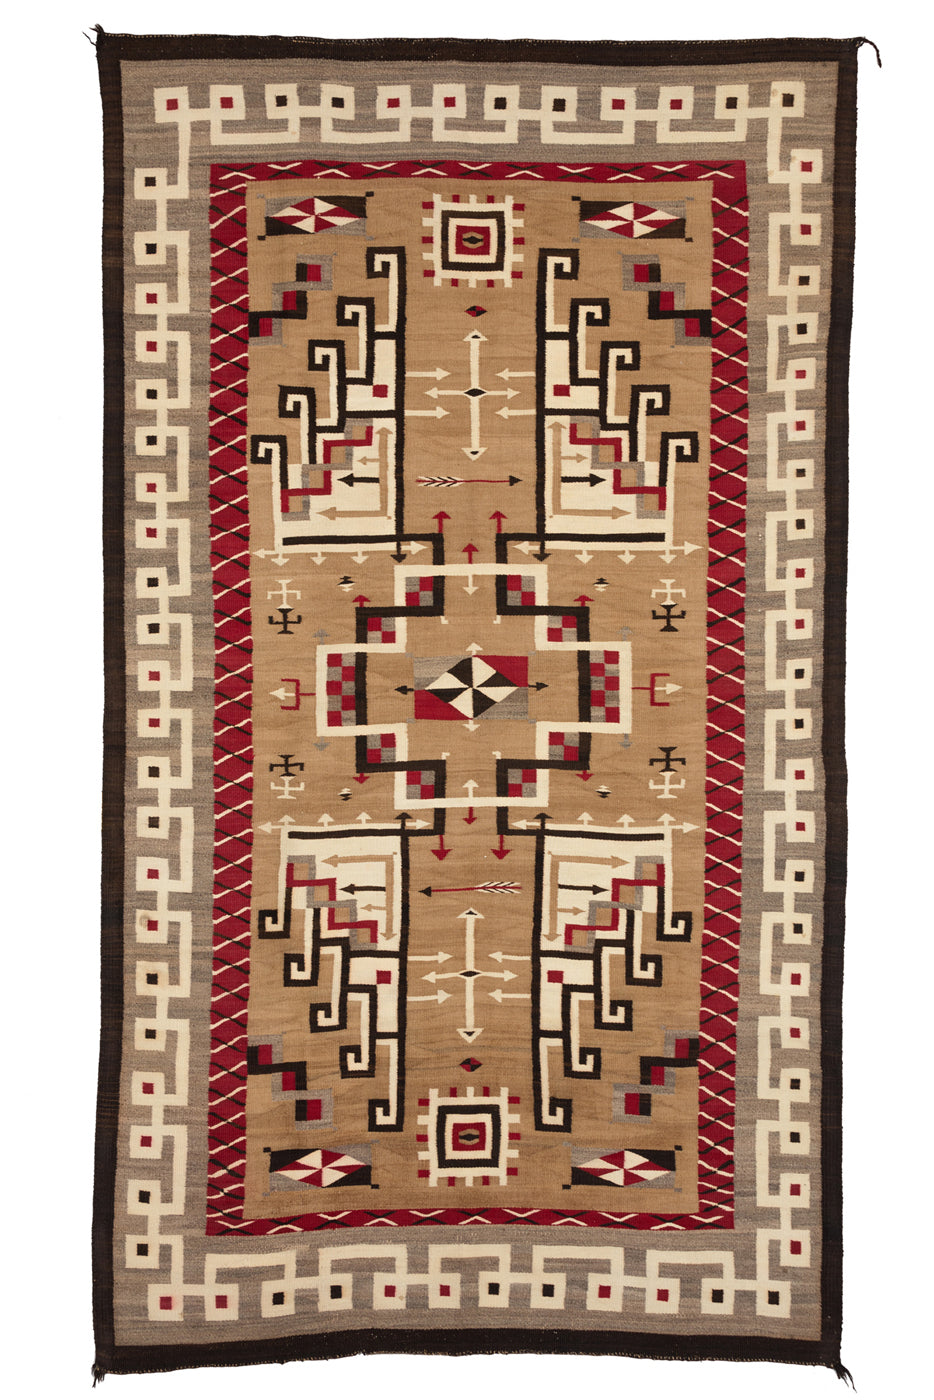 Historic JB MORE Navajo rug very intricate design